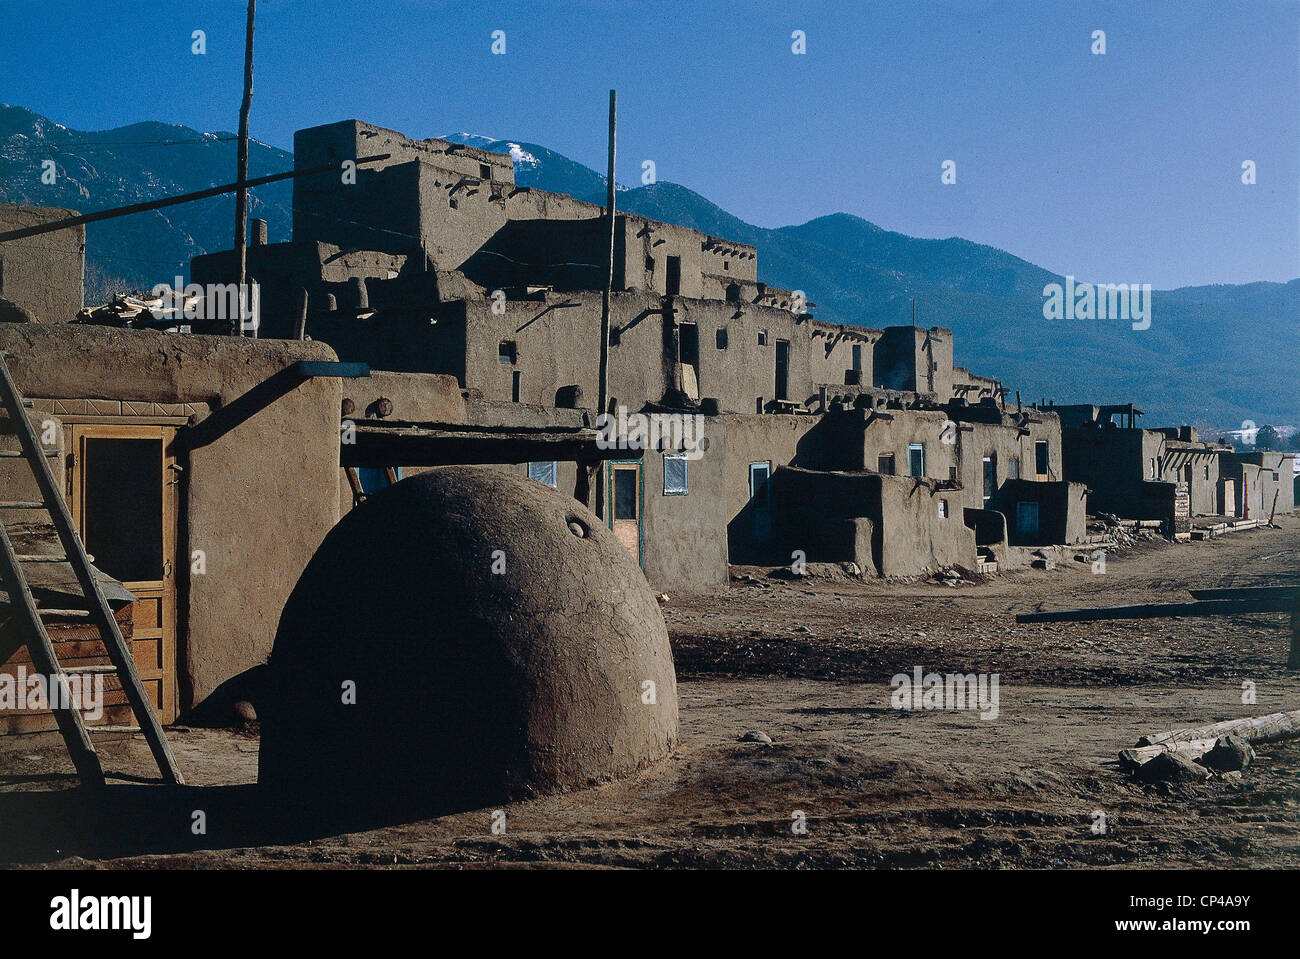 United States of America - New Mexico - Taos. Settlement or Pueblo de Taos Taos Pueblo (World Heritage Site by UNESCO, - Stock Image